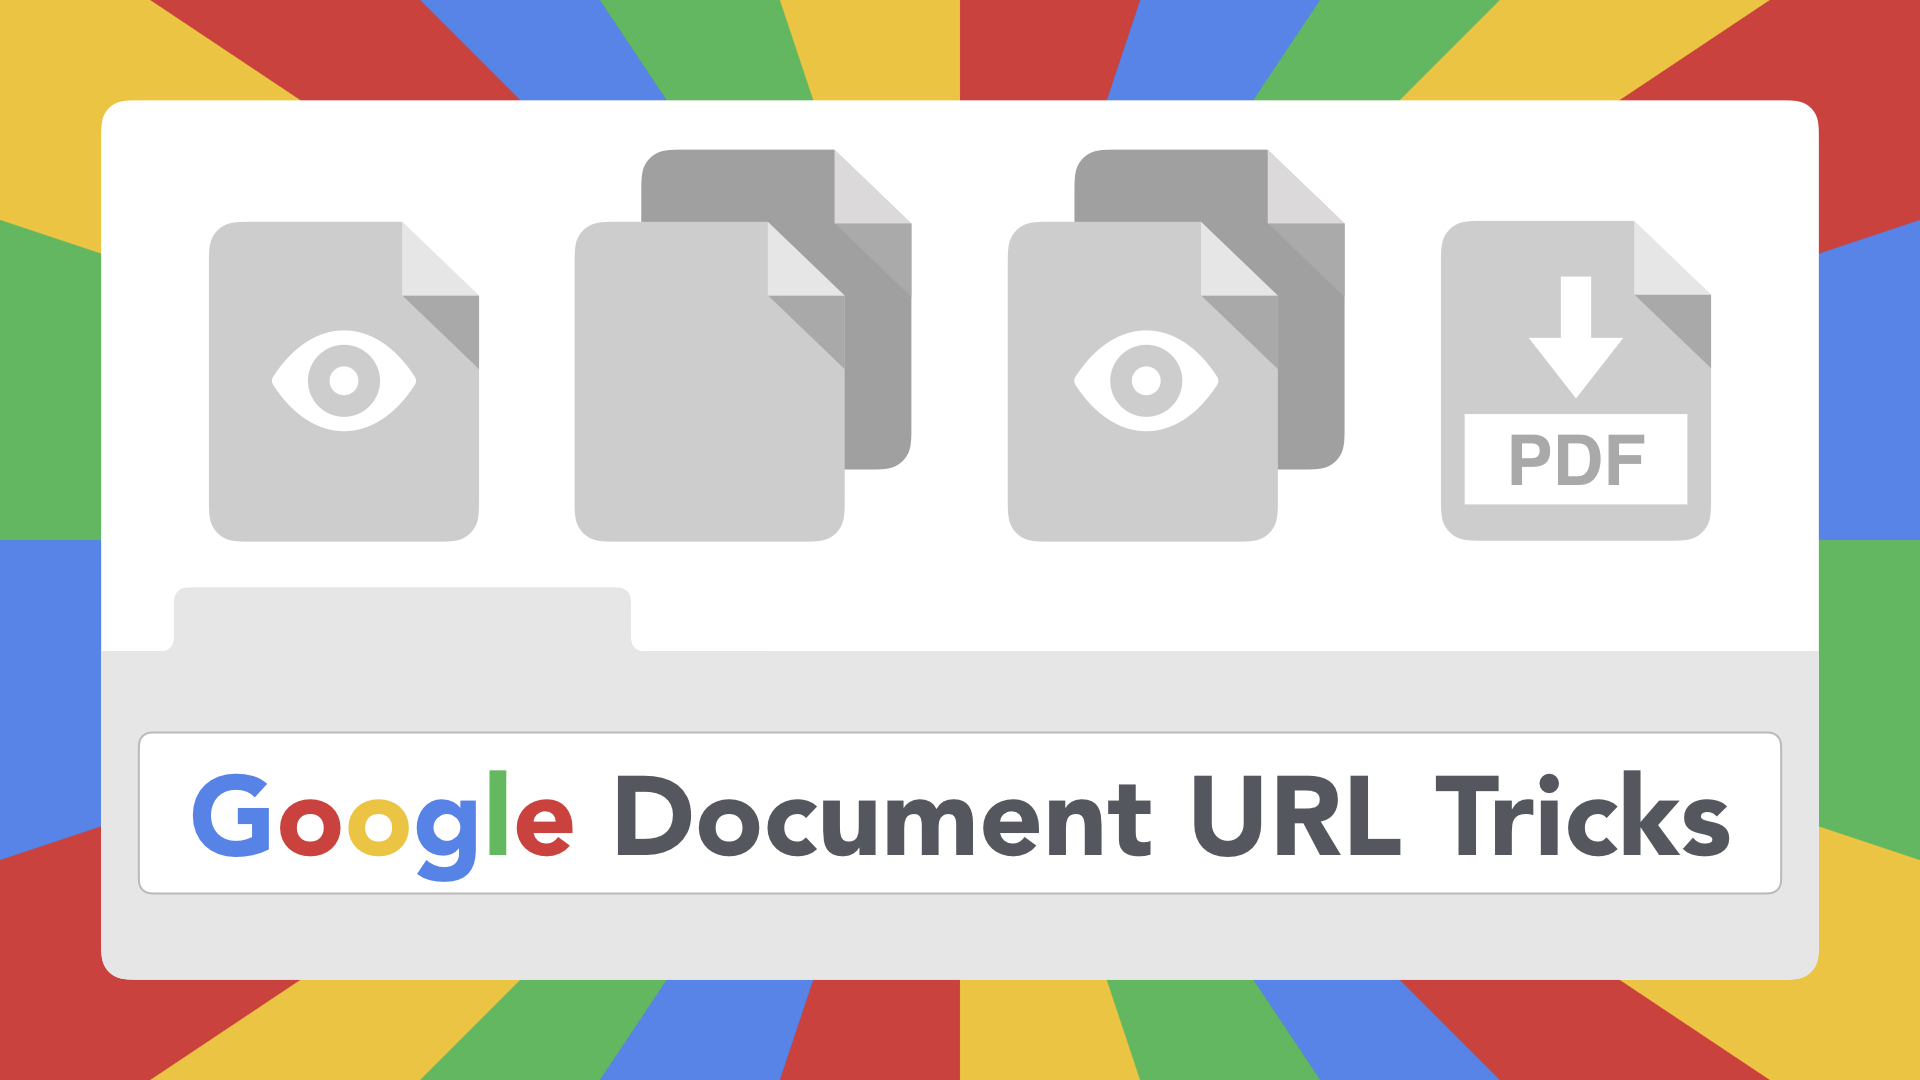 Google Document URL Tricks